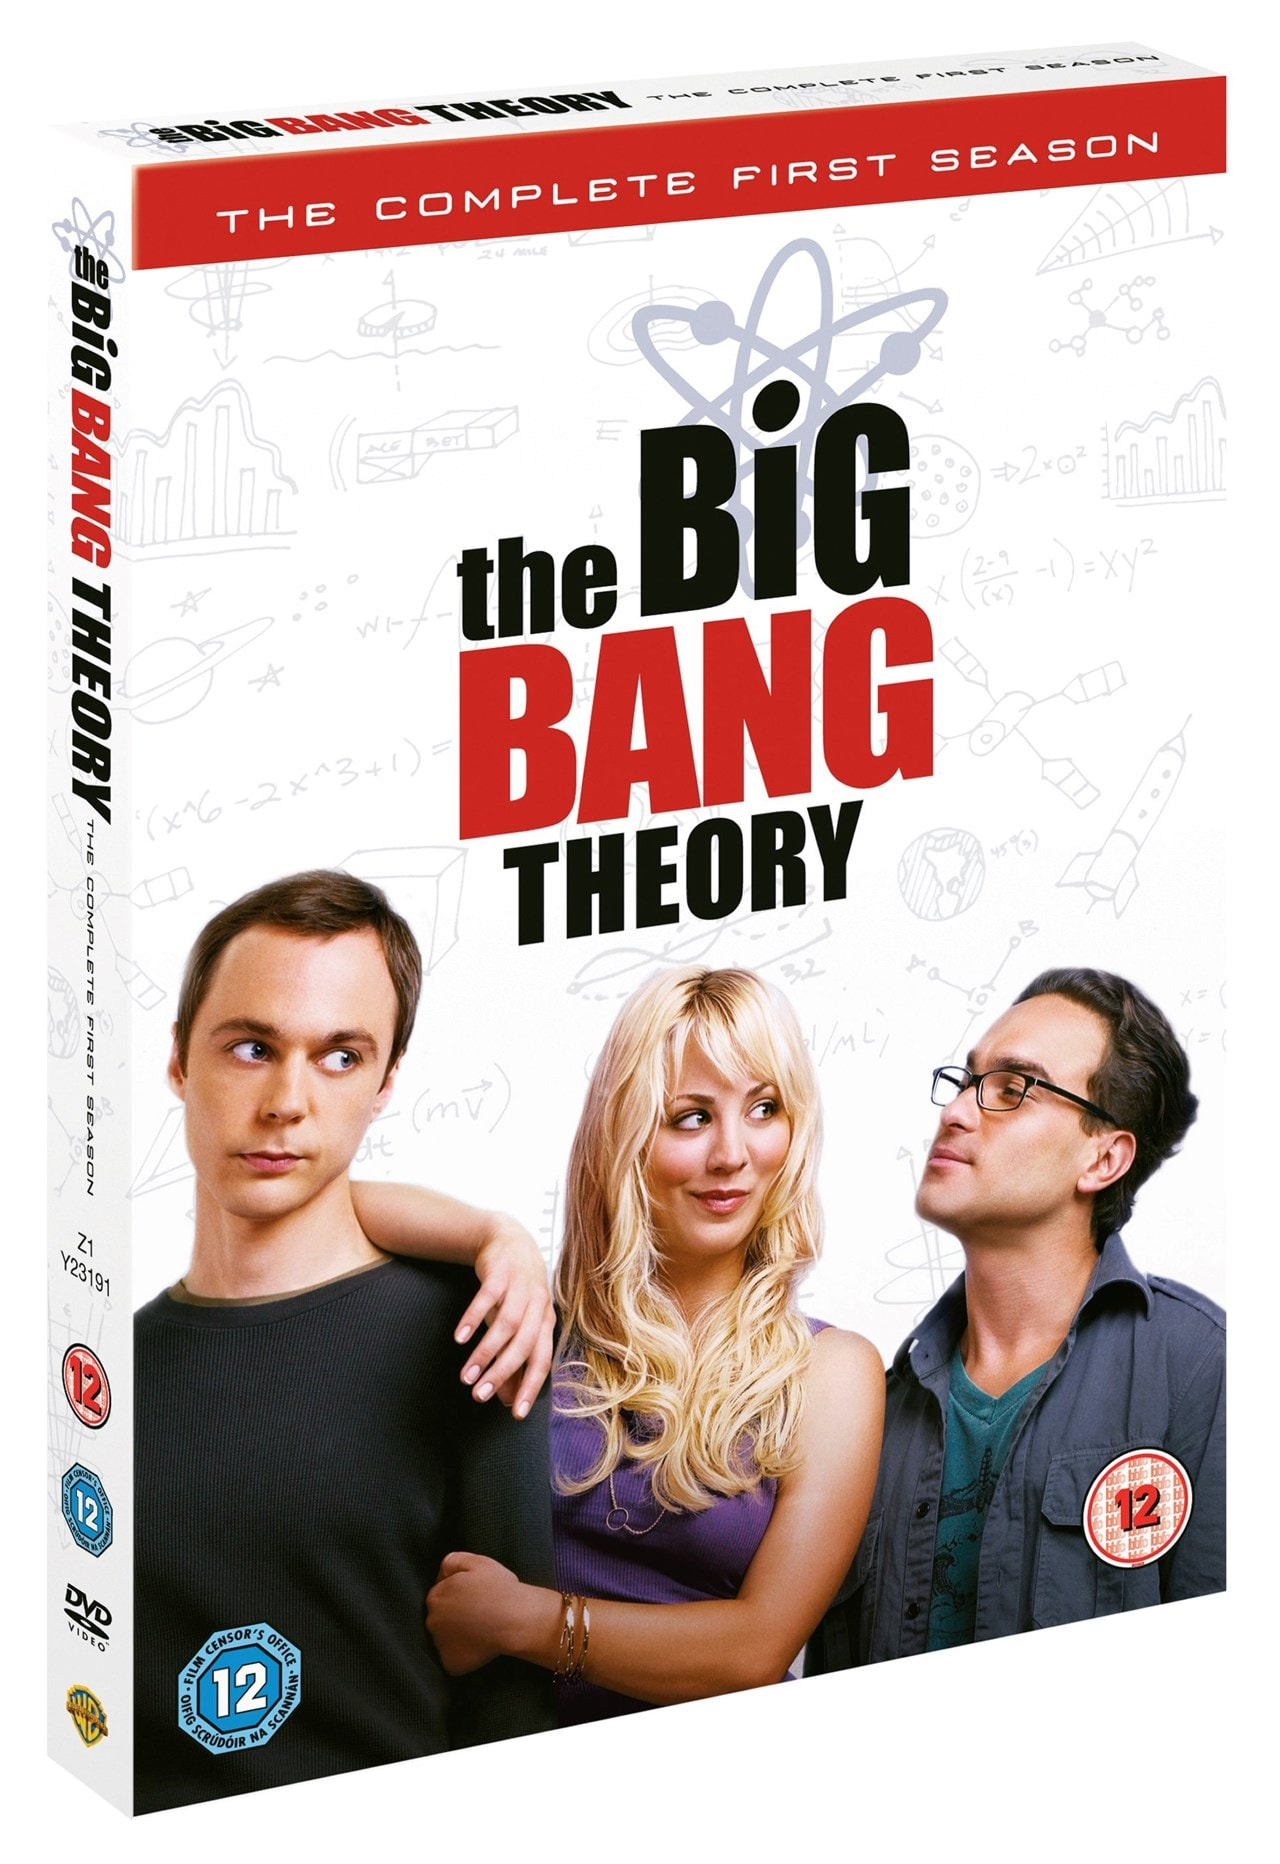 The Big Bang Theory: The Complete First Season - 2